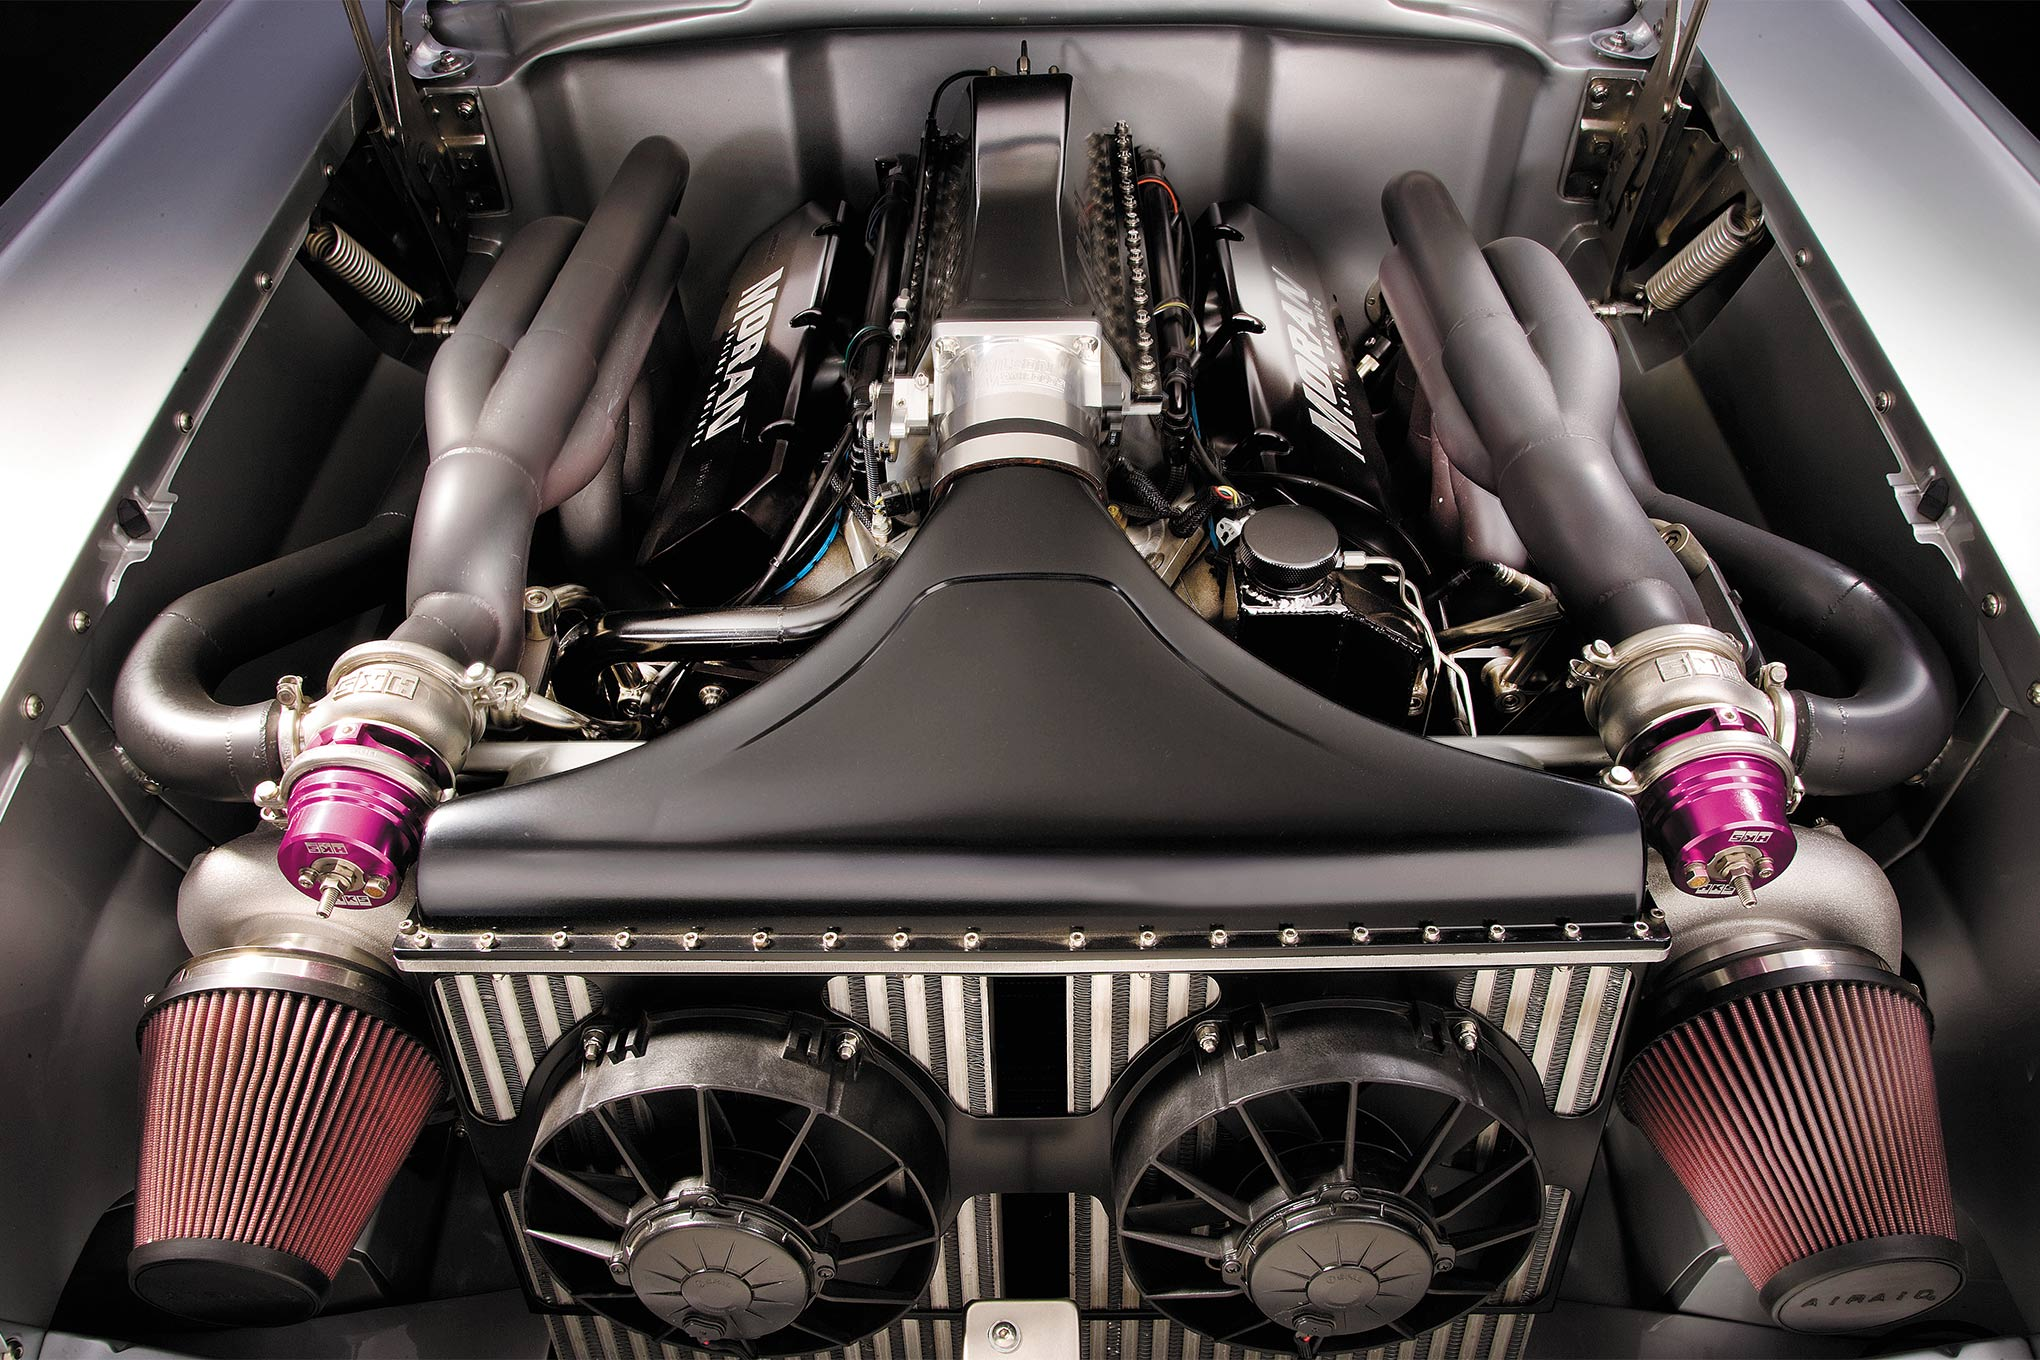 "From any angle this is an impressive and intimidating engine; a 540-inch Dart Big M steel block (Chevy), 80mm Precision turbos, and 60mm HKS wastegates. Did we mention 1,695 hp at 16 pounds of boost at 6,500 rpm? Can you say traction control! Look and enjoy: the headers, and the remainder of the exhaust system, were masterfully built by the crew  at Dominator Street Rods. There are no mufflers! Heat is horsepower and this big-block is plenty hot, requiring the use of a Meziere electric water pump and a pair of SPAL electric fans matched to the Steve Long brass radiator. Additional cooling is required and aptly handled by two more SPAL fans hidden in the front fender area that evacuates air from the engine compartment. Should Red Line want to dial back the horsepower by ""only"" 10 pounds of boost, the V-8 will produce 1,225 hp on 93 octane."